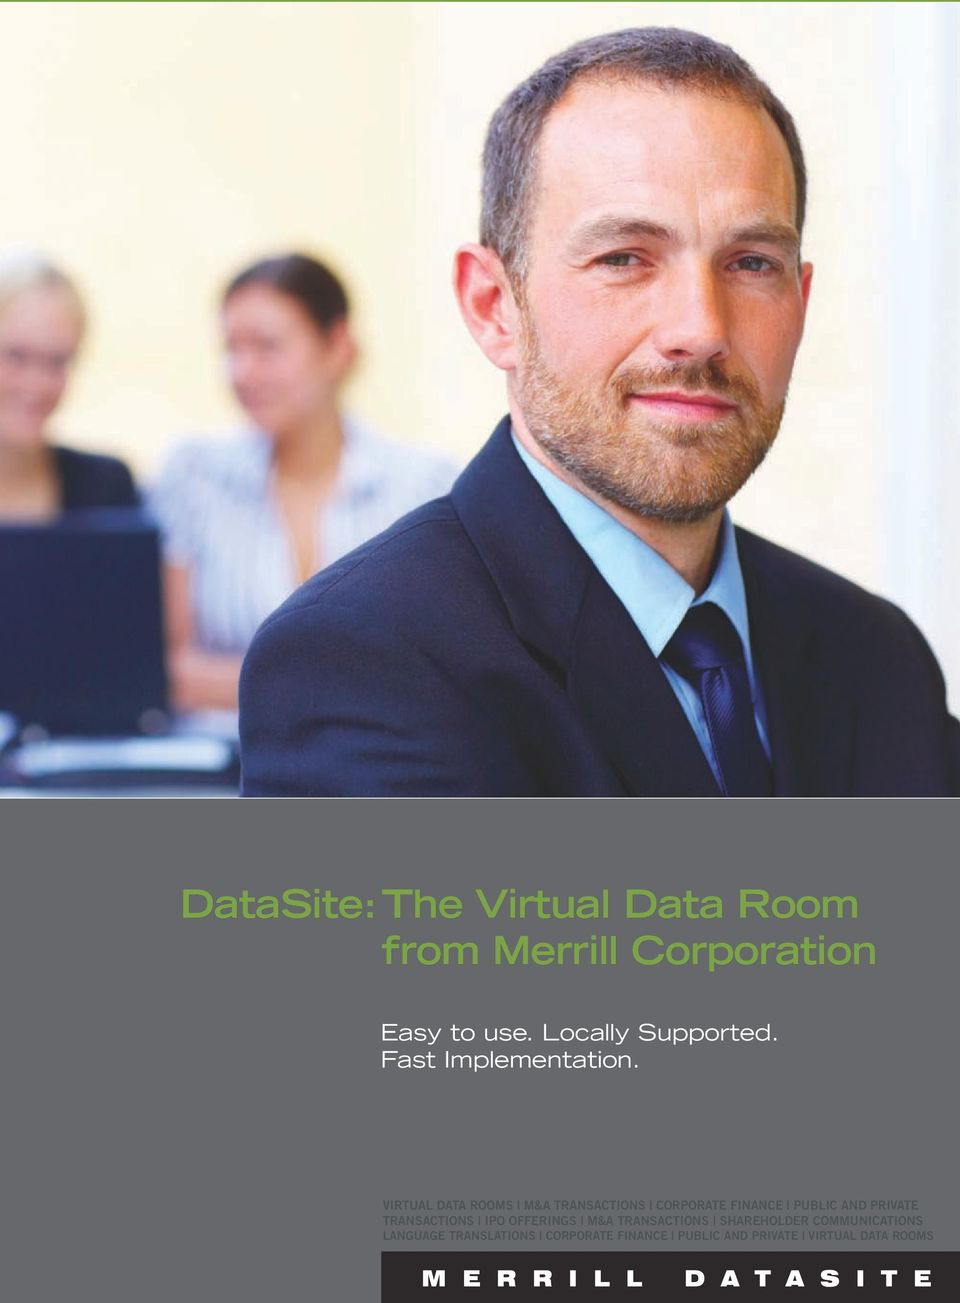 VIRTUAL DATA ROOMS M&A TRANSACTIONS CORPORATE FINANCE PUBLIC AND PRIVATE